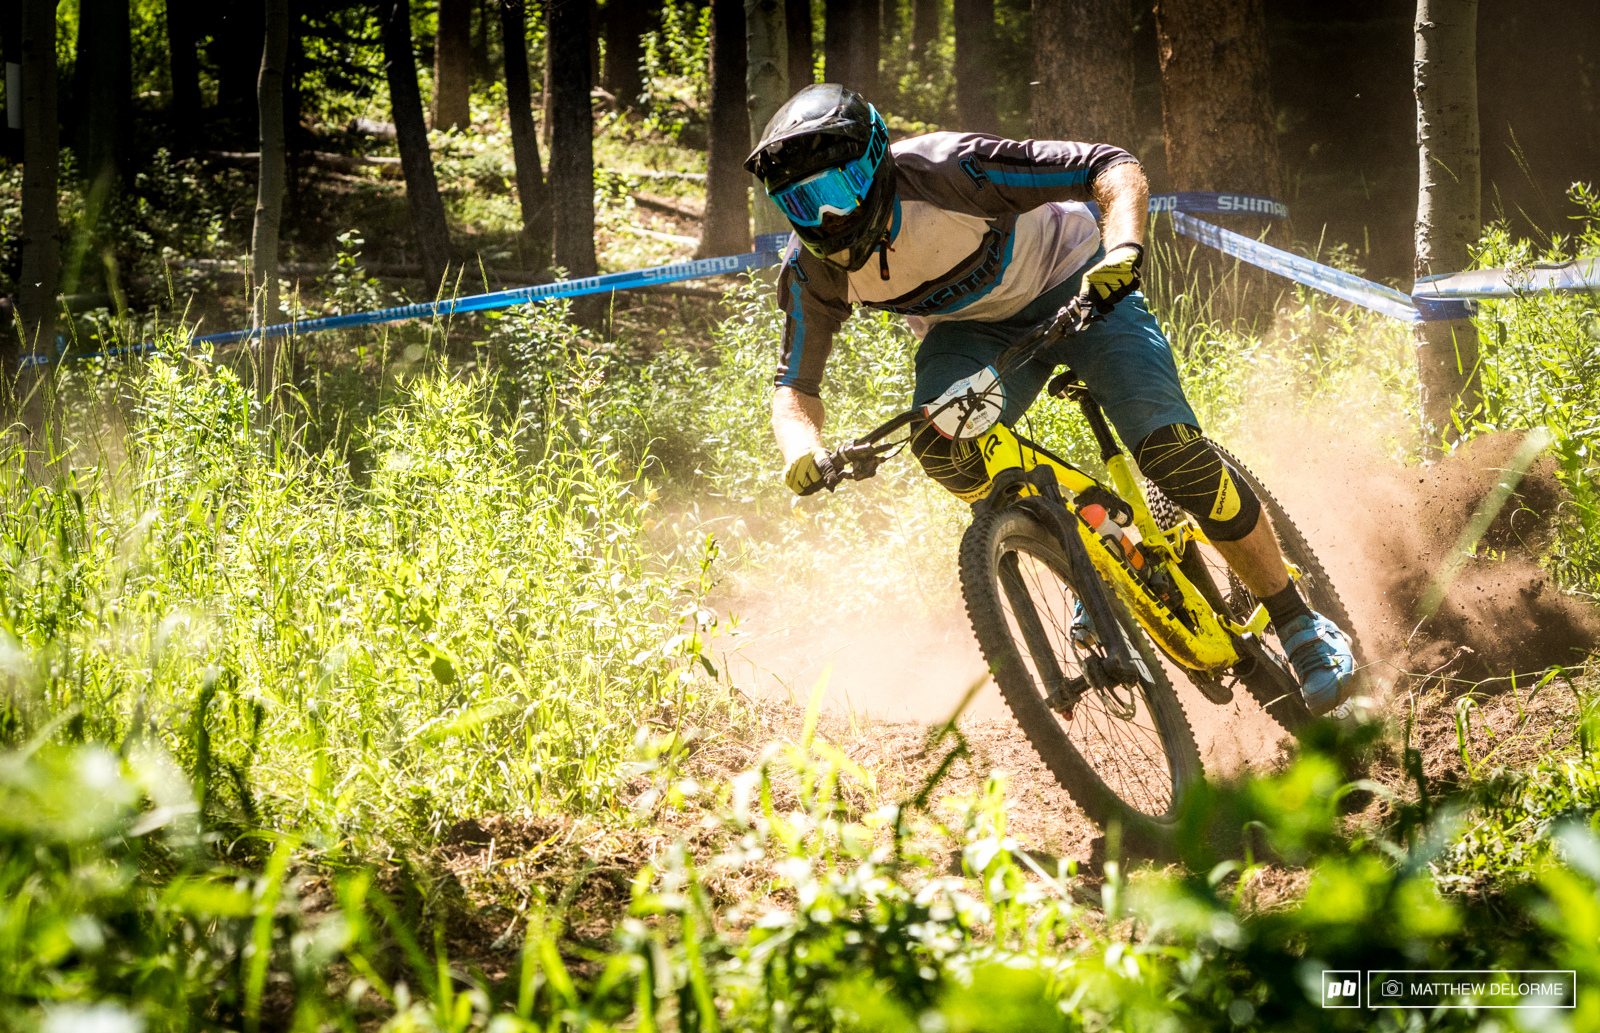 There are plenty of dusty loose corners here in Aspen to slide around.